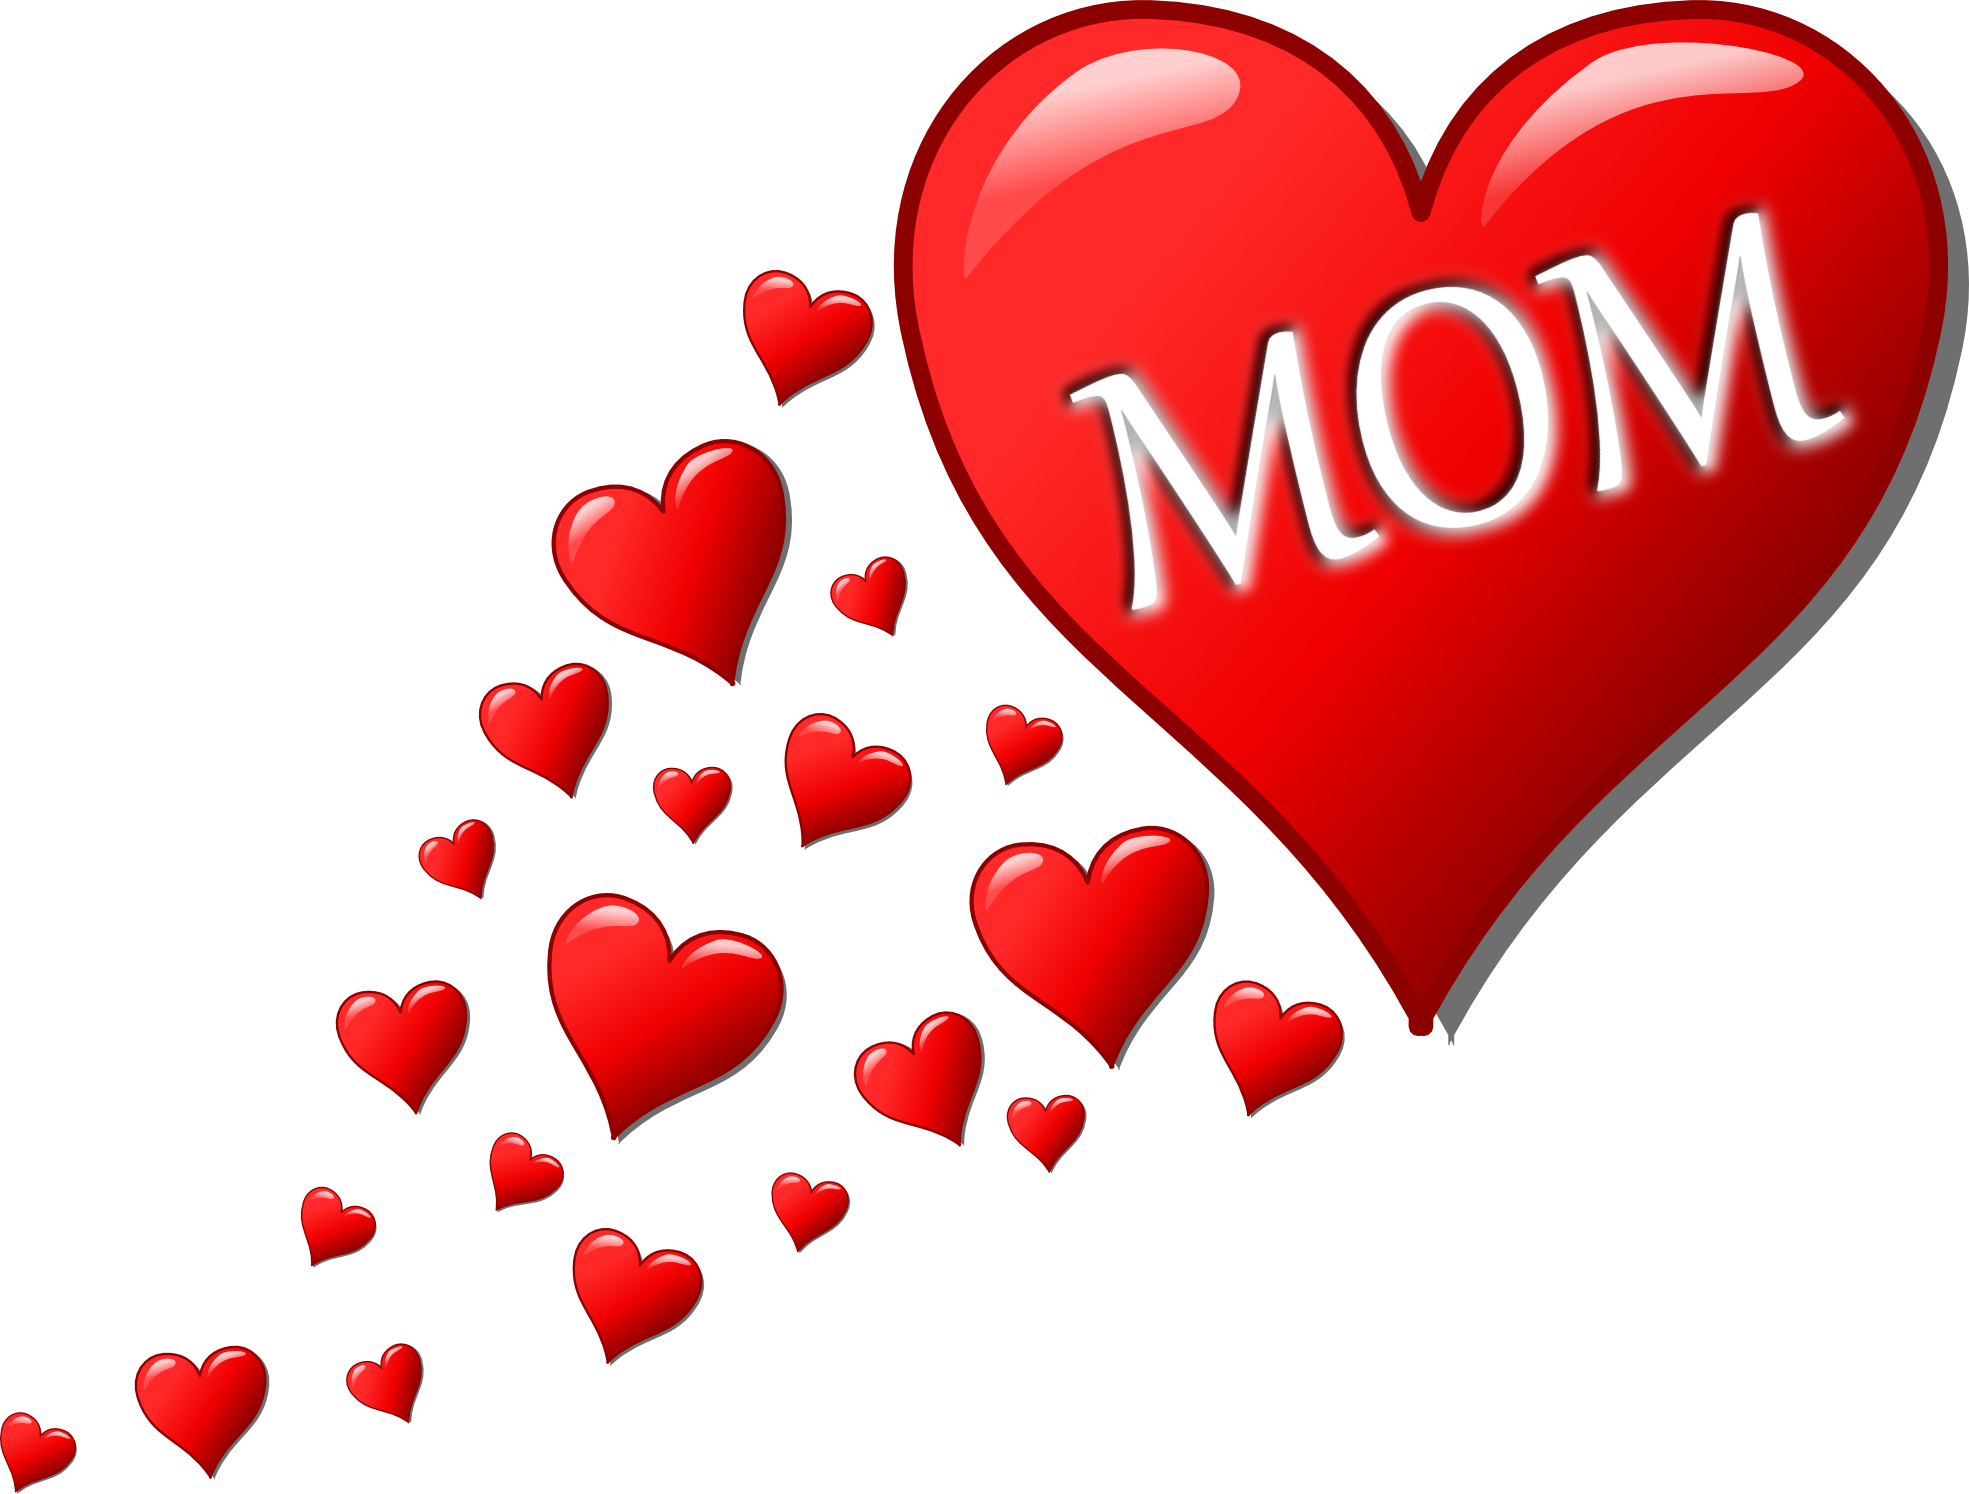 Hearts mother free icons. I love mom png clip art download